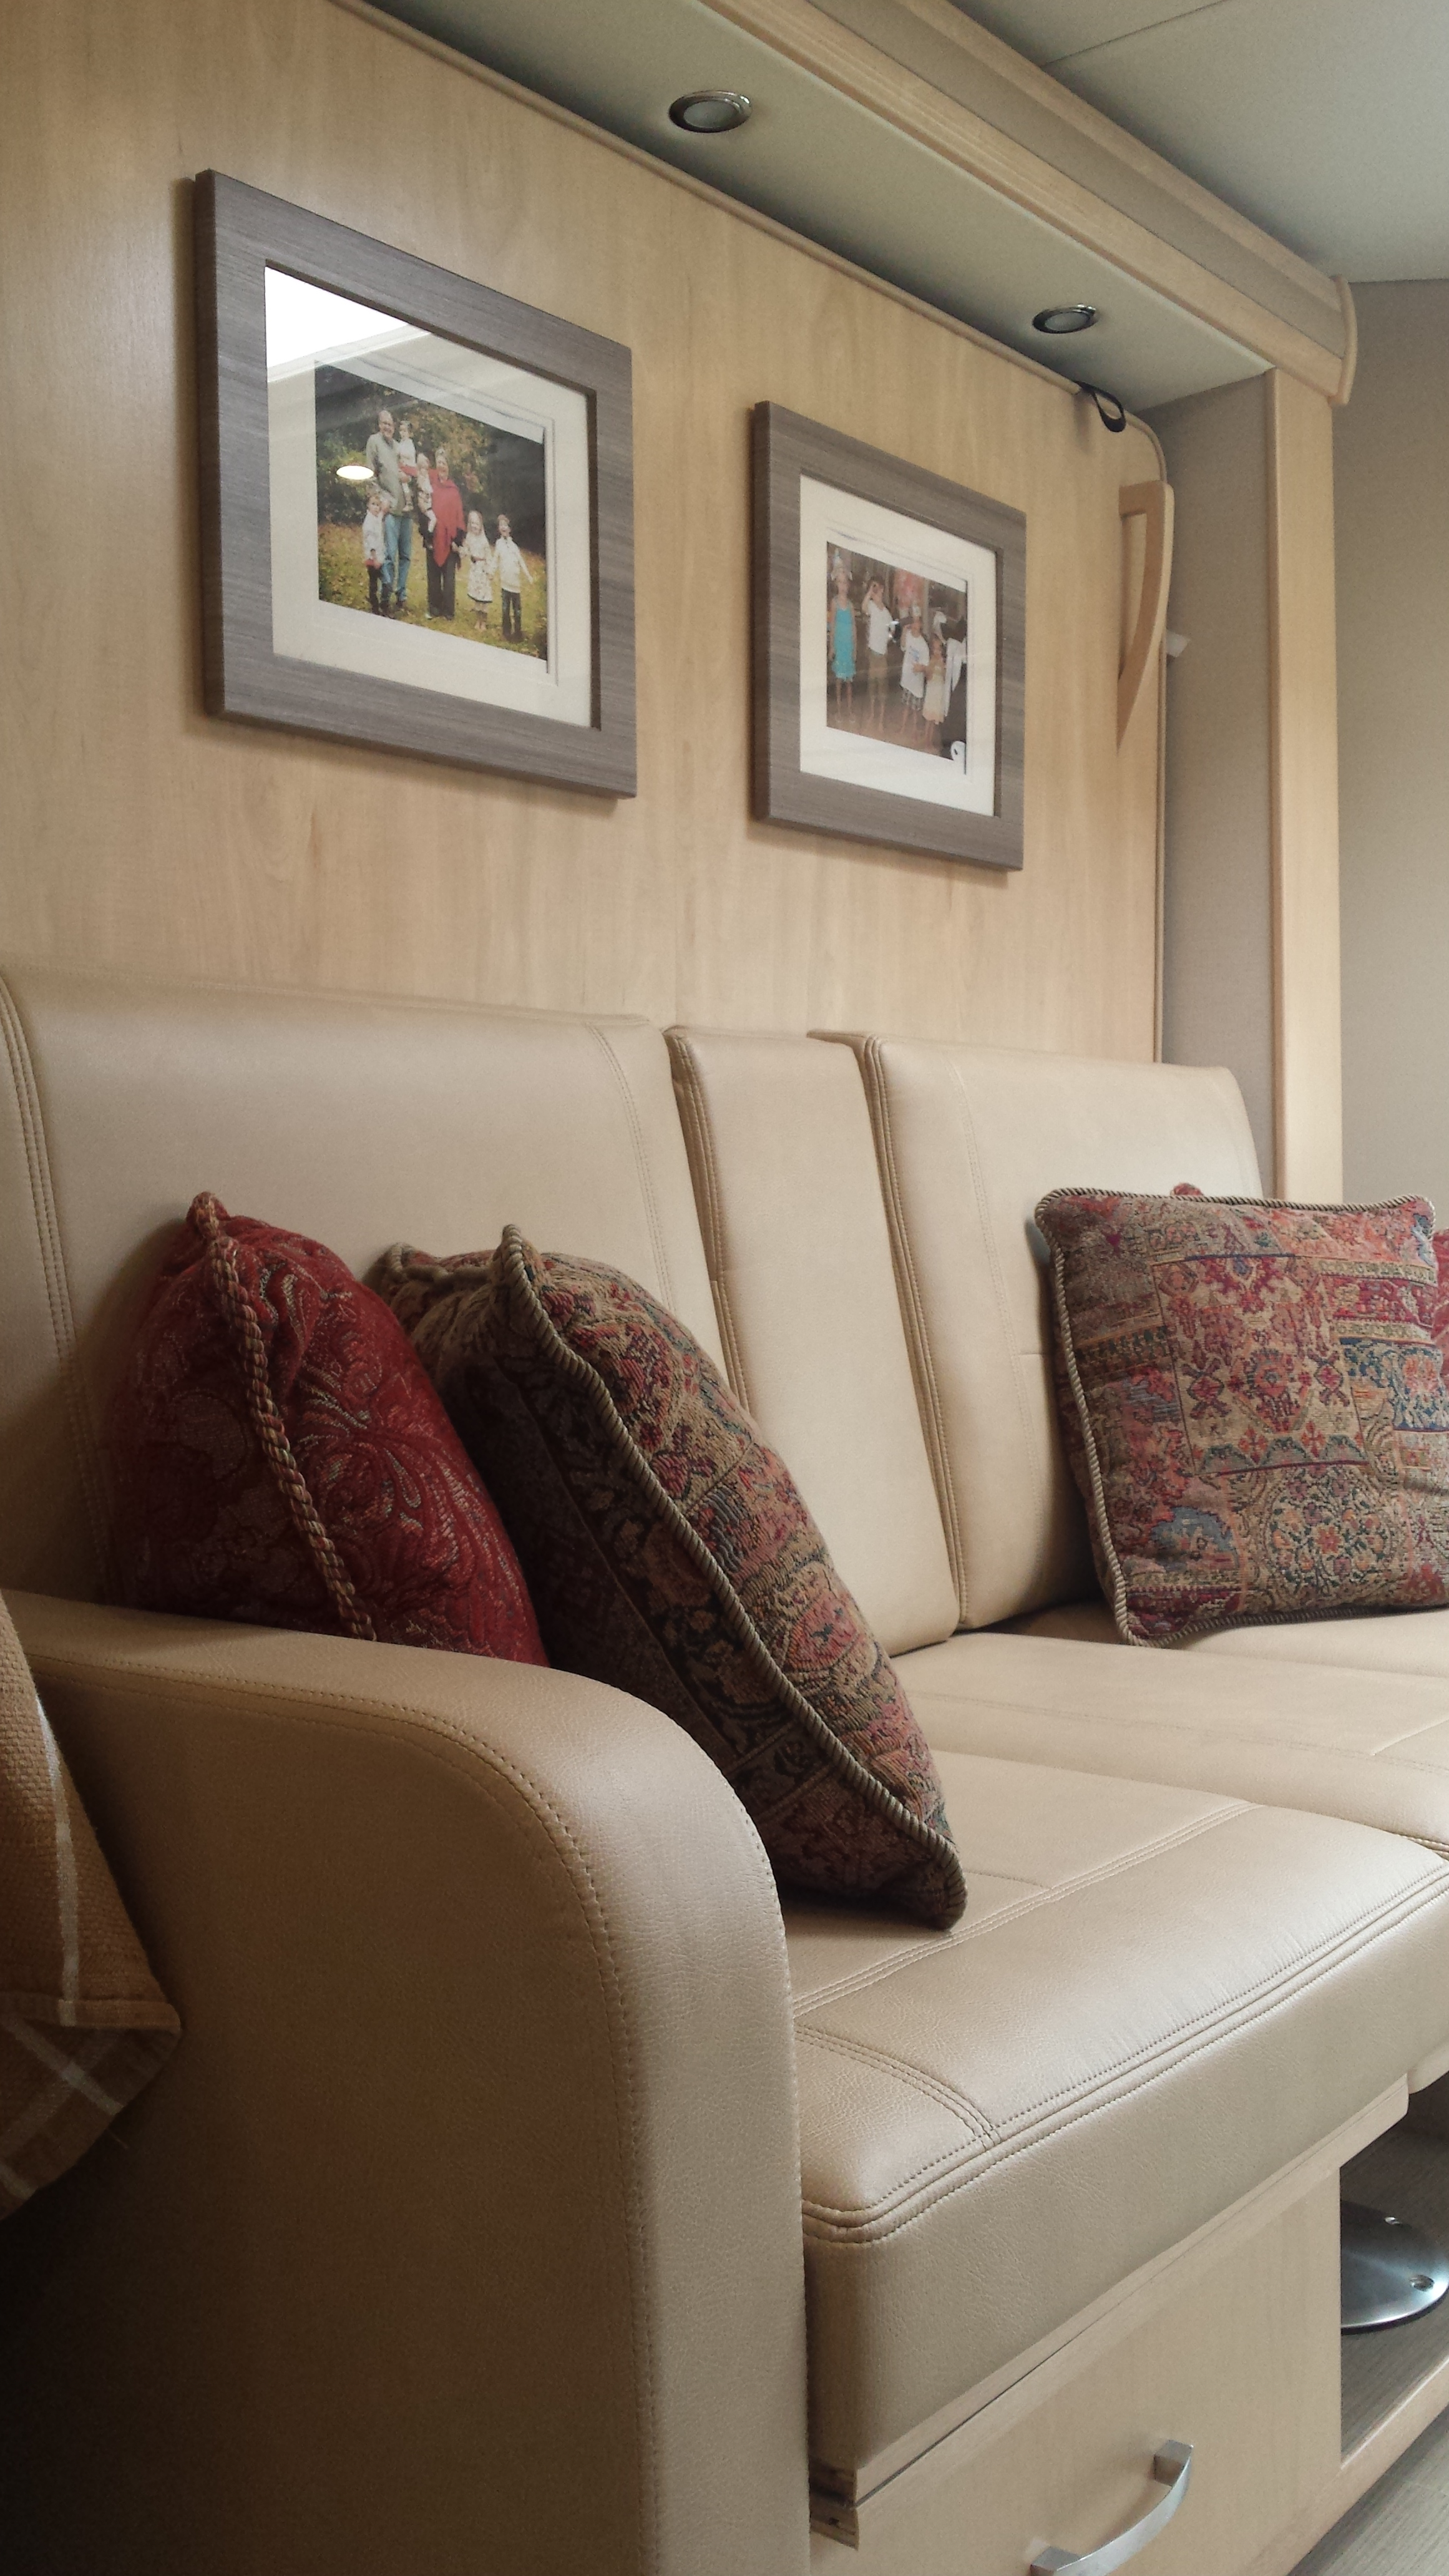 Making the most of a space in our small rv, there is a Murphy Bed behind the couch.